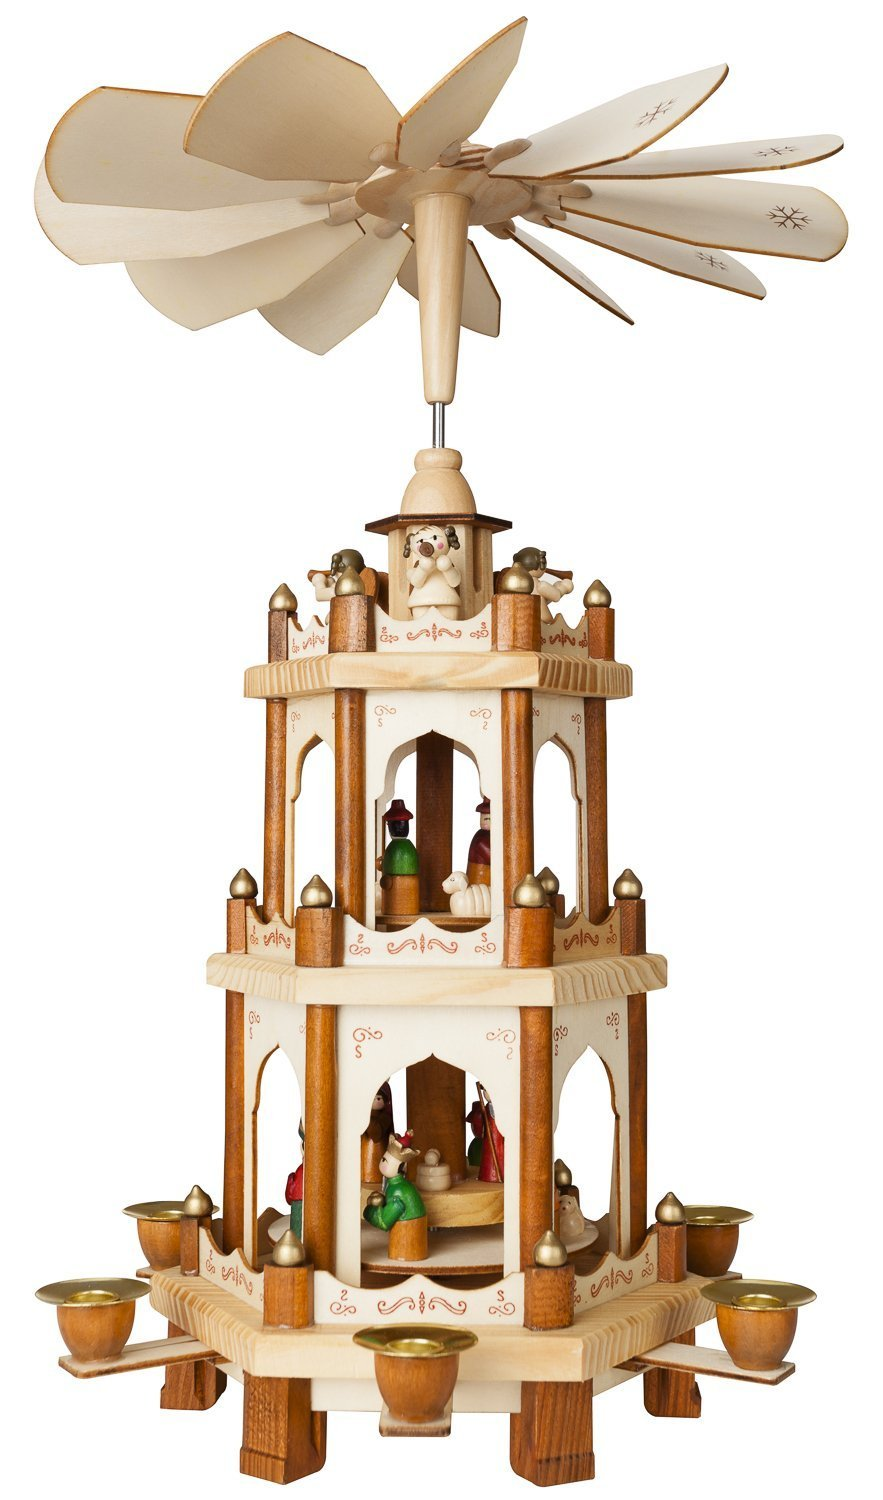 Christmas decoration with candles that spins - Amazon Com Christmas Decoration Pyramid 18 Inches Nativity Play 3 Tier Carousel With 6 Candle Holders Brubaker Design From Germany Home Kitchen